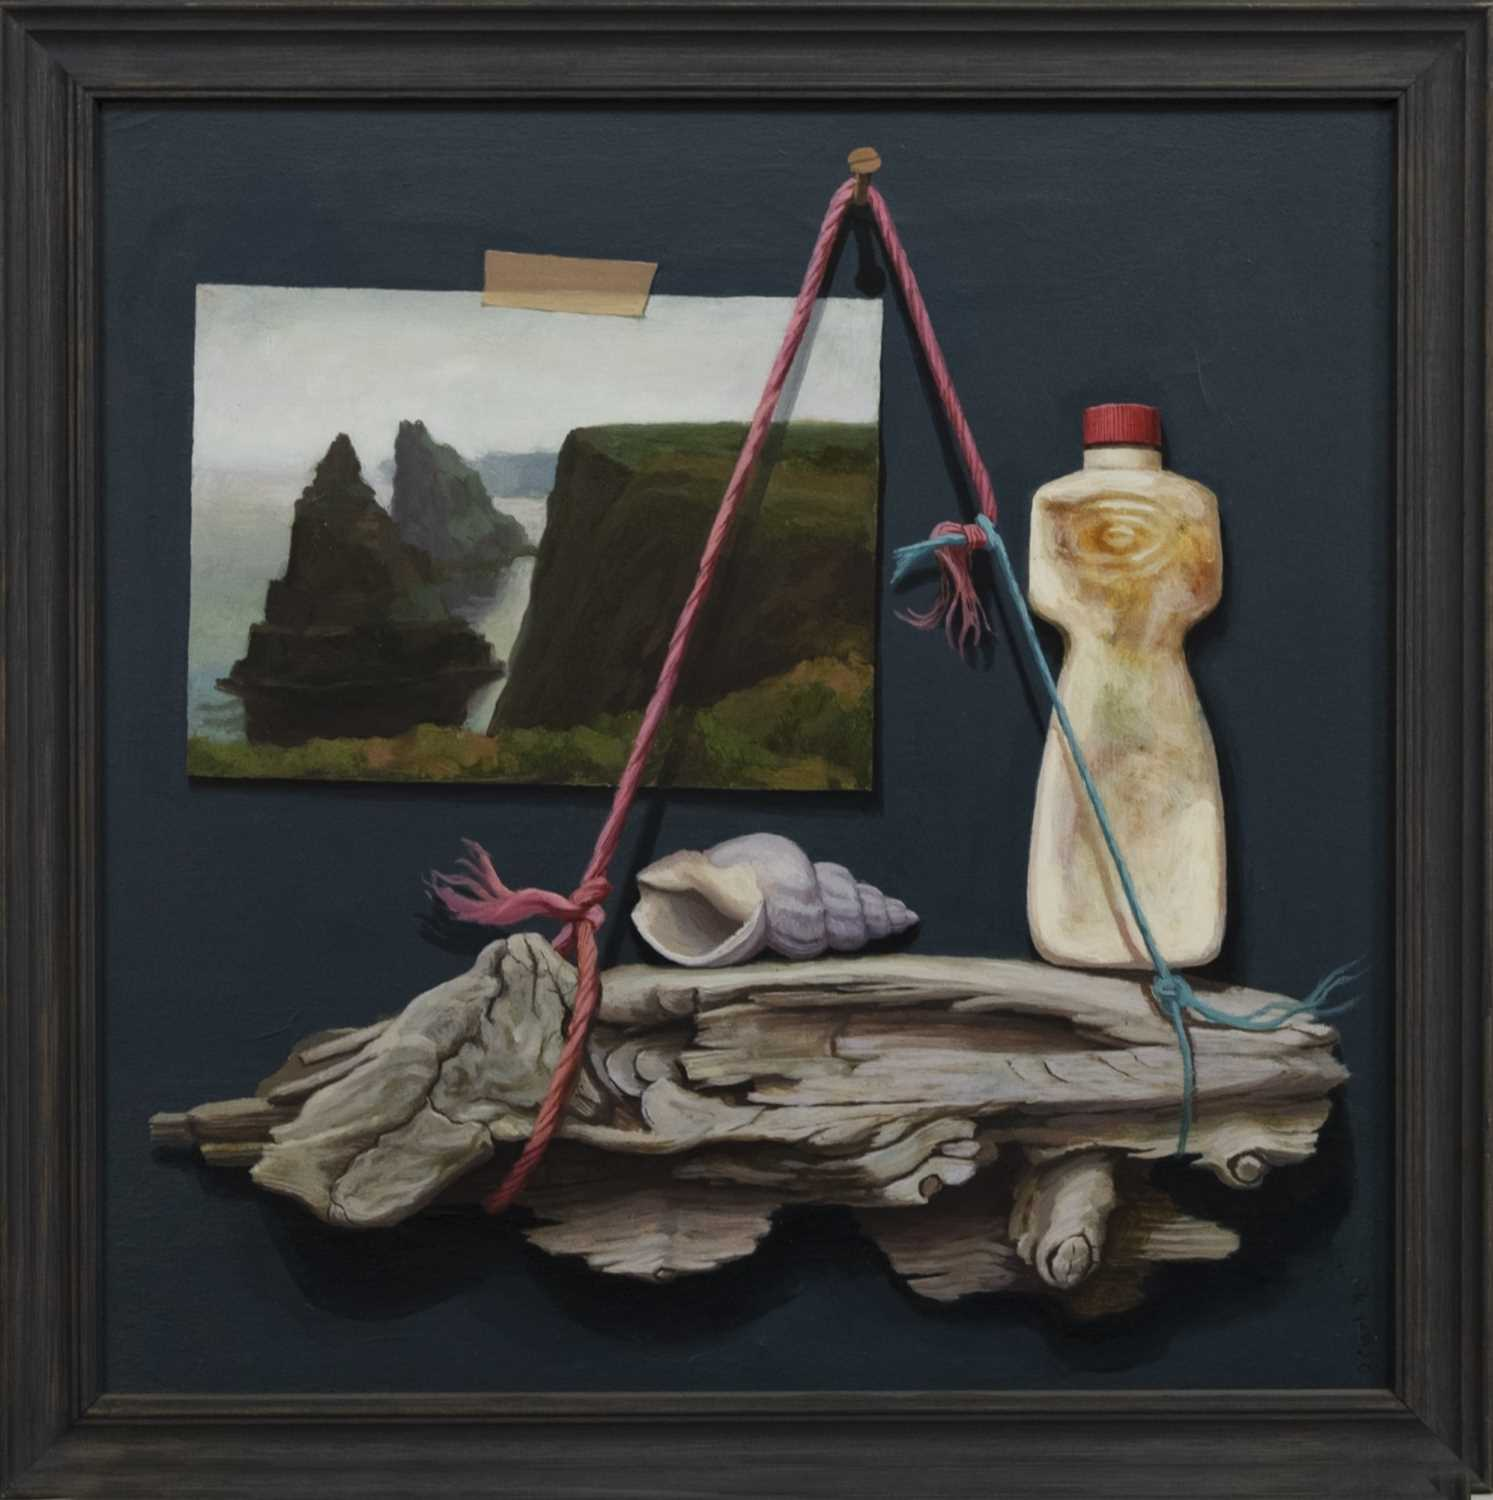 Lot 679 - DUNCANSBY HEAD, AN OIL BY DONALD CLARK